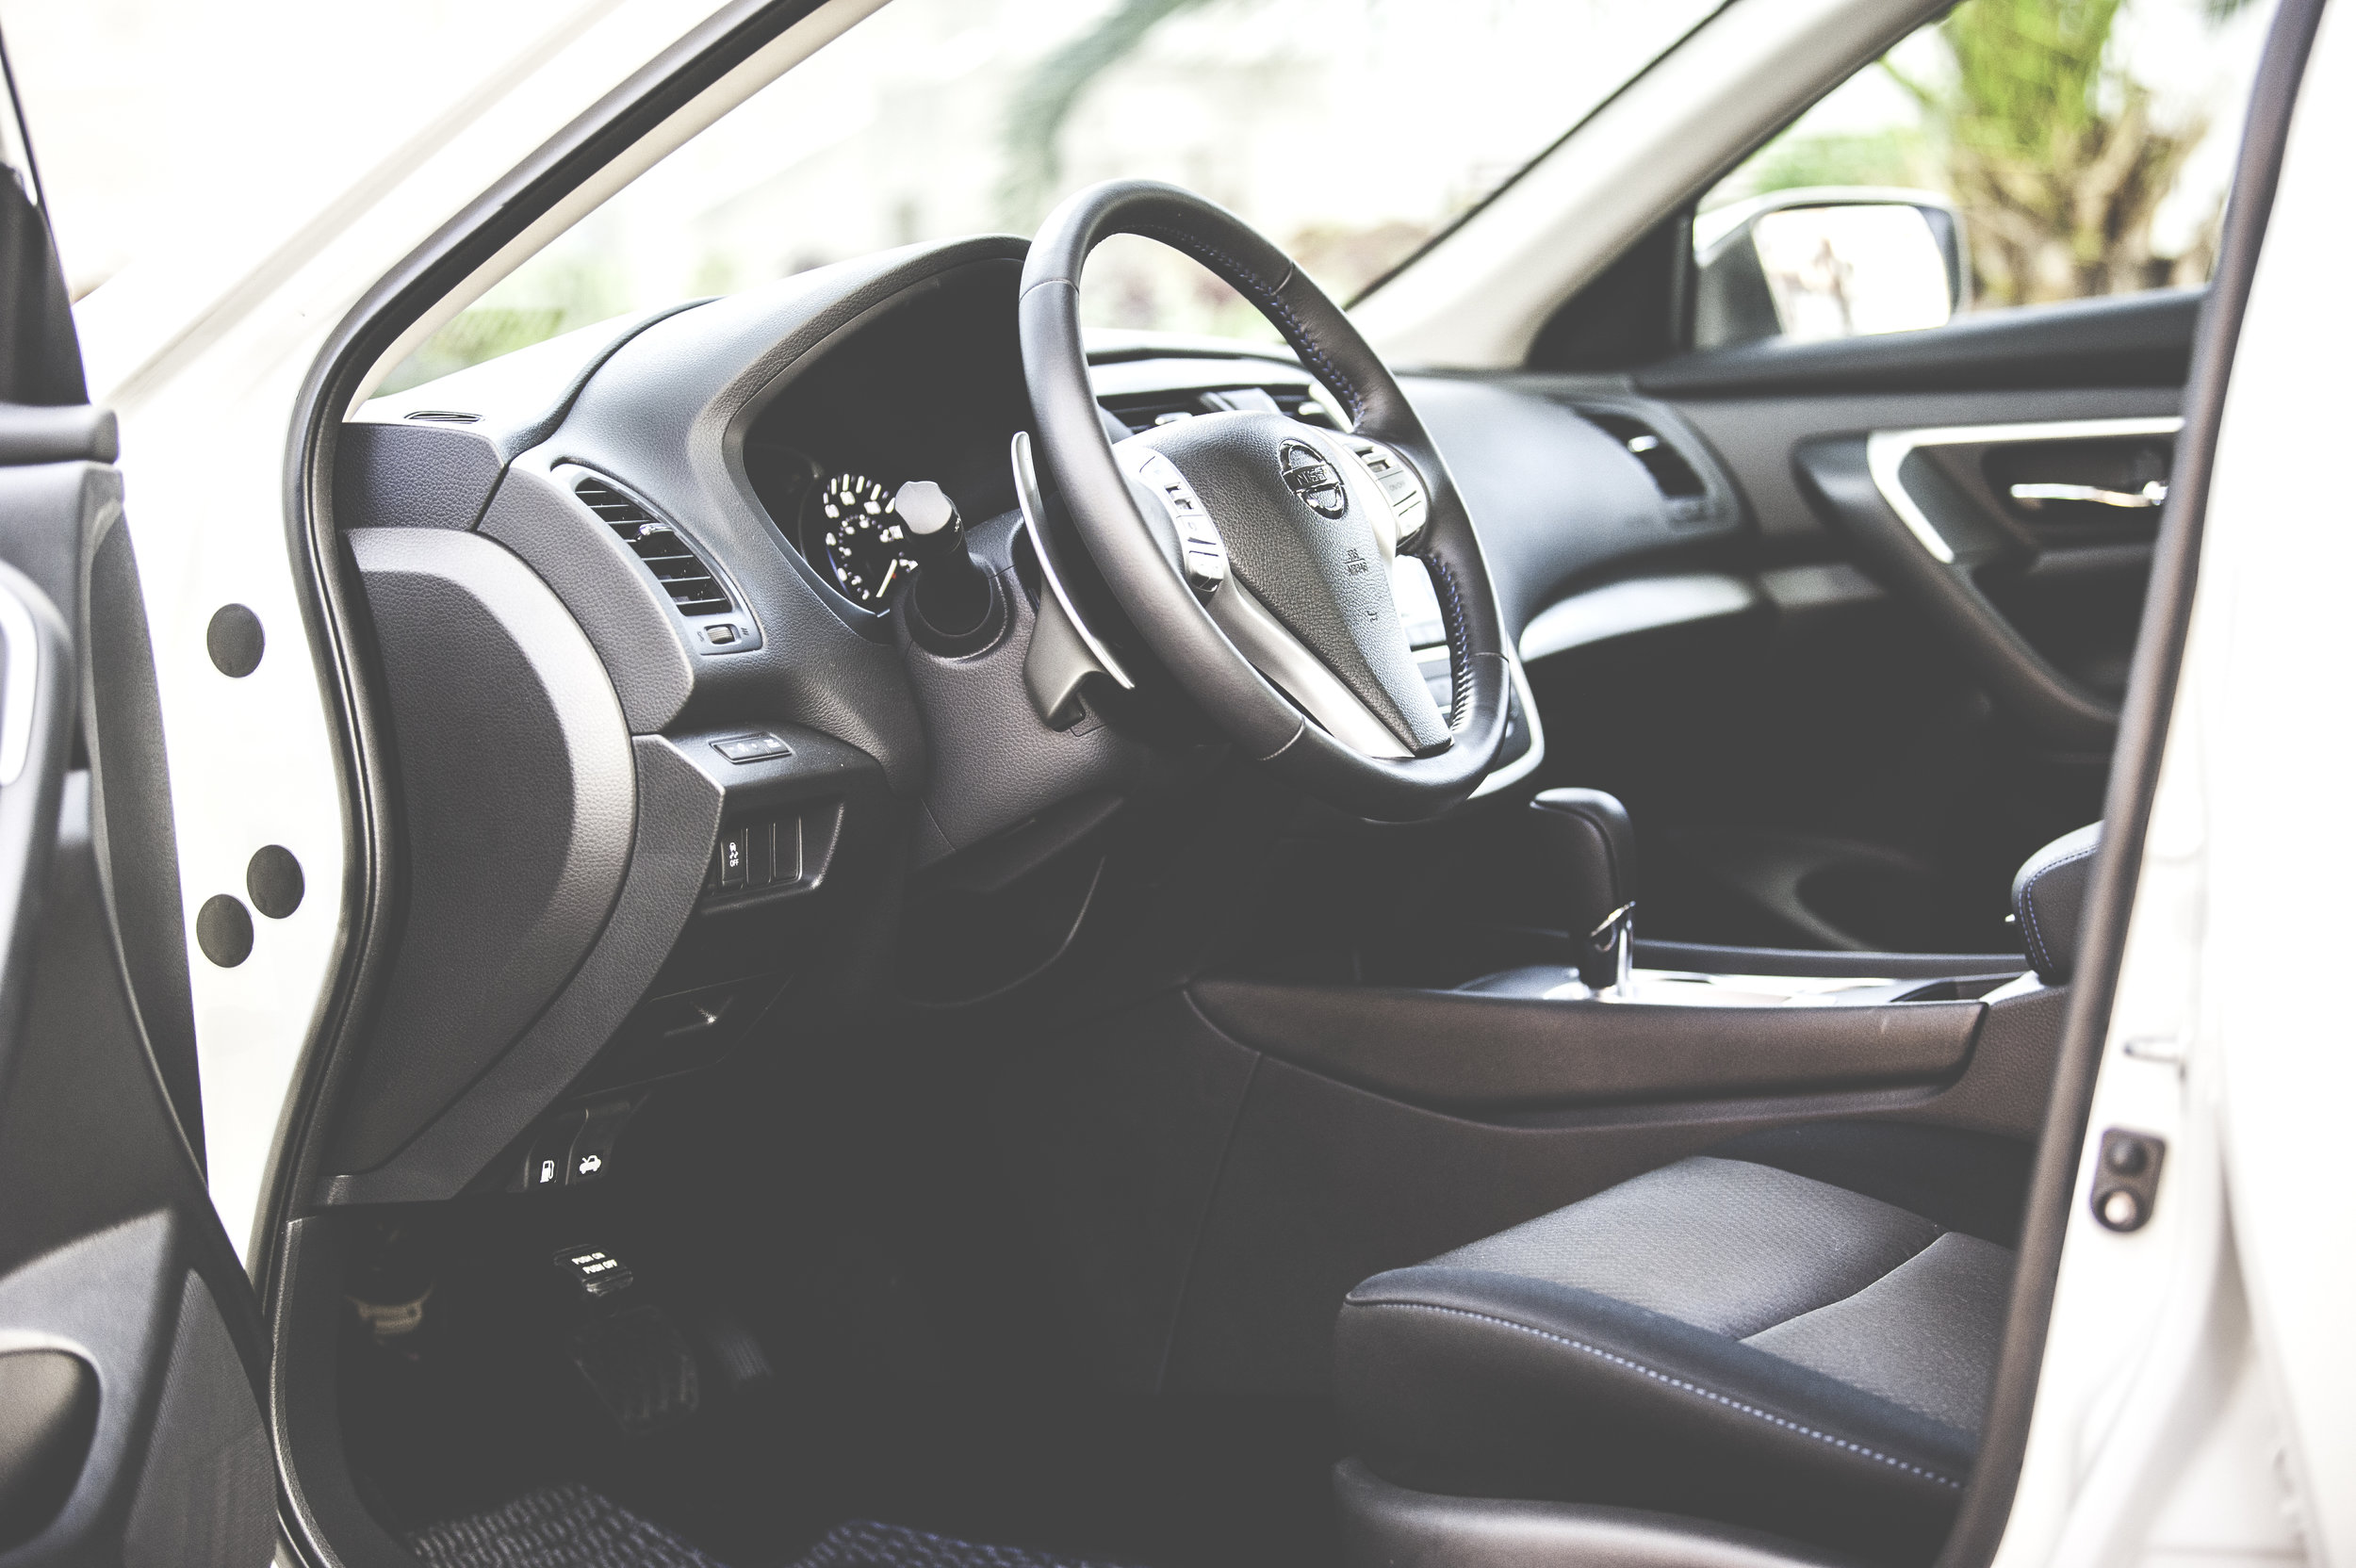 RIDE WITH US TODAY - Why opt for cramped and old city cabs when you can go for a more lavish ride? Here at ULTIMATE 1 TRANSPORTATION, we bring transportation to another level. We boast a fleet of well-maintained sedans and SUVs and a team of experienced drivers to make sure you are given a comfortable ride every time you employ our services. To learn more, do not hesitate to contact our staff.